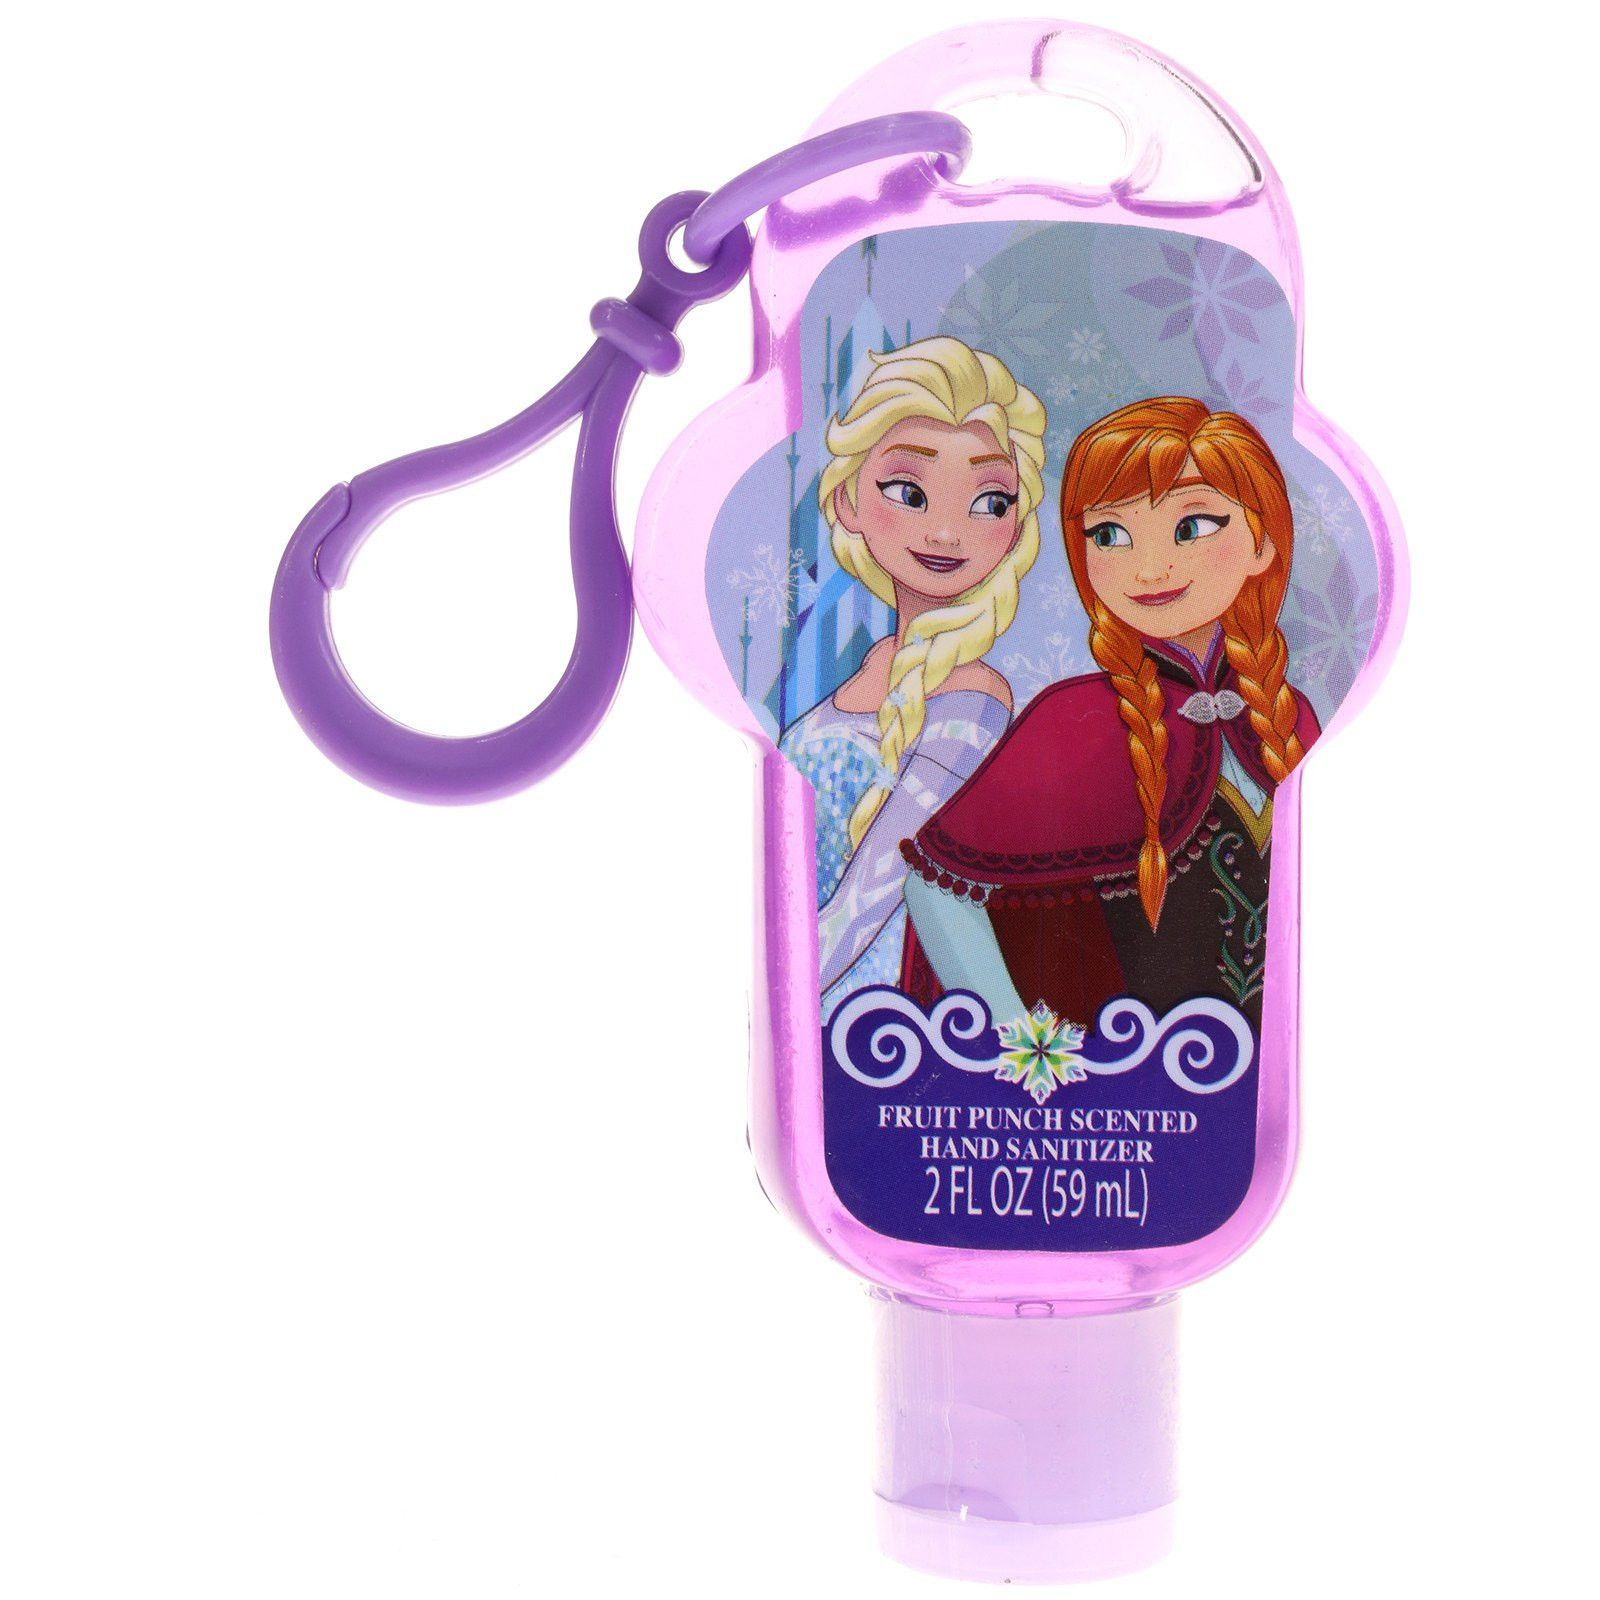 Frozen Single Hand Sanitizer Hand Sanitizer Frozen Beauty Kit